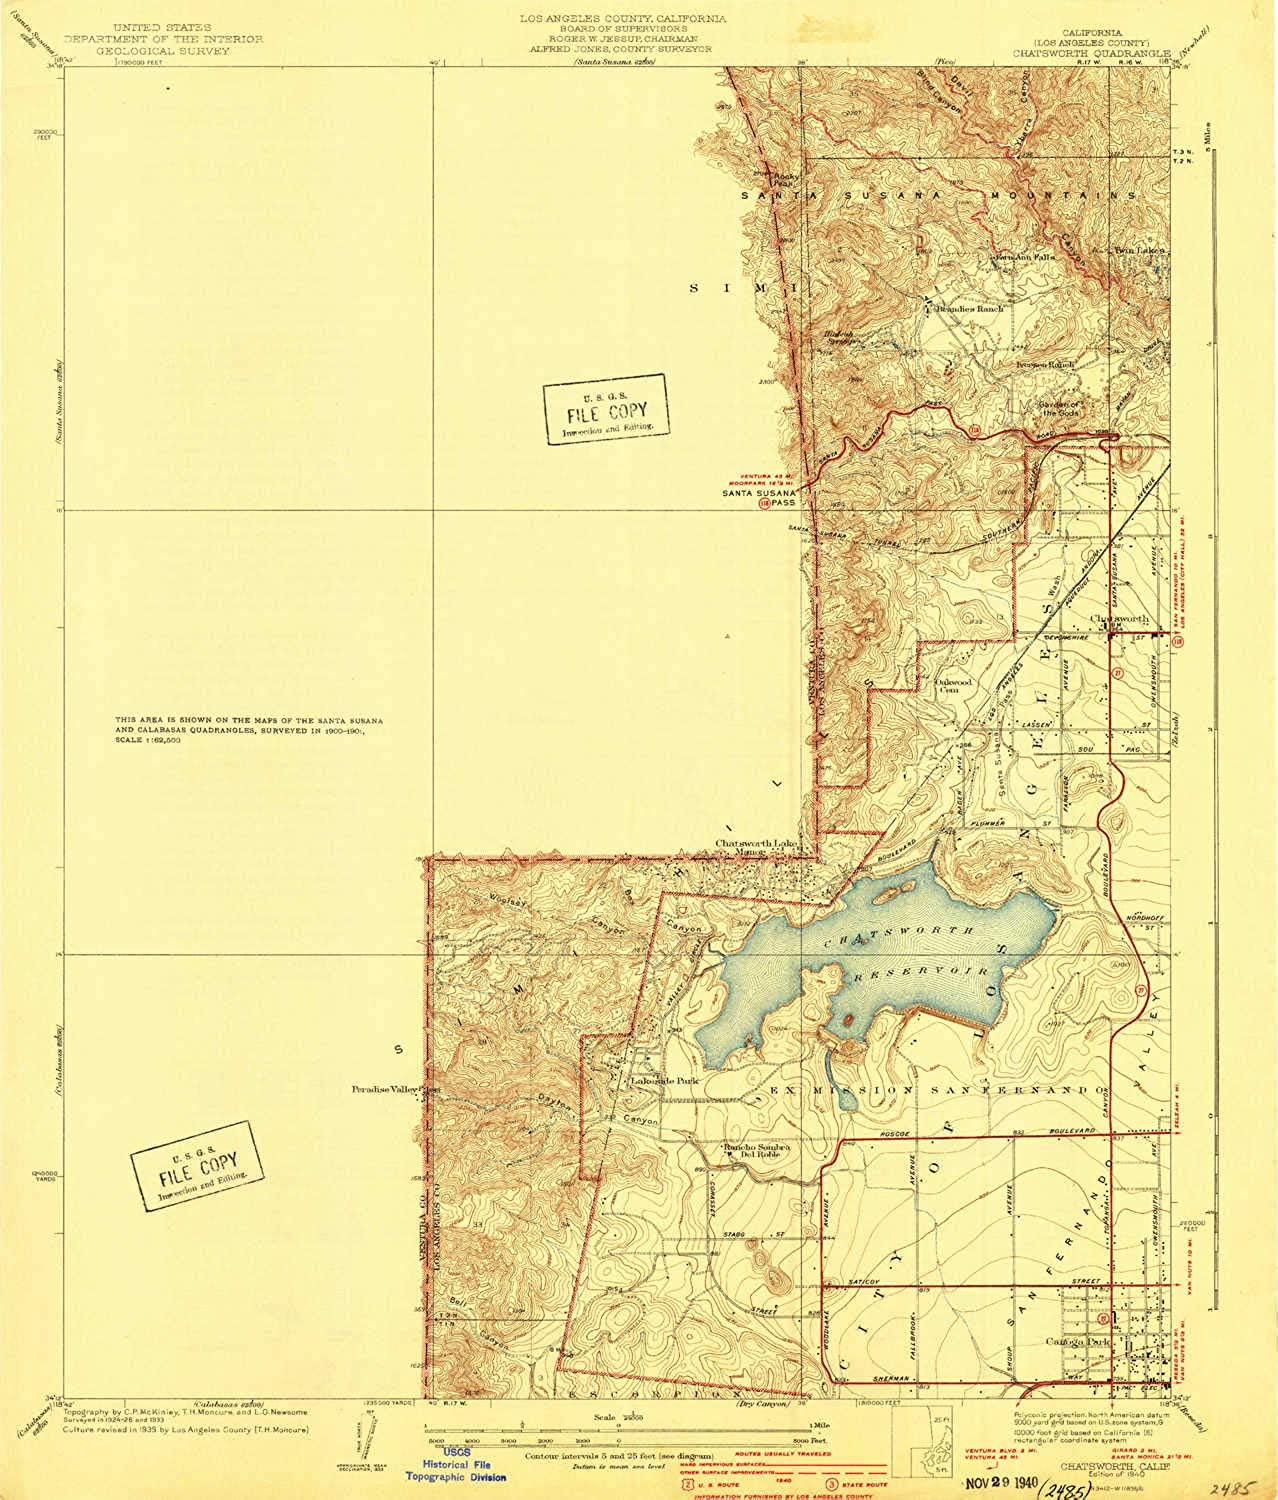 Chatsworth CA topo map, 1 24000 Scale, 7.5 X 7.5 Minute, Historical, 1940, 20.5 x 17.5 in